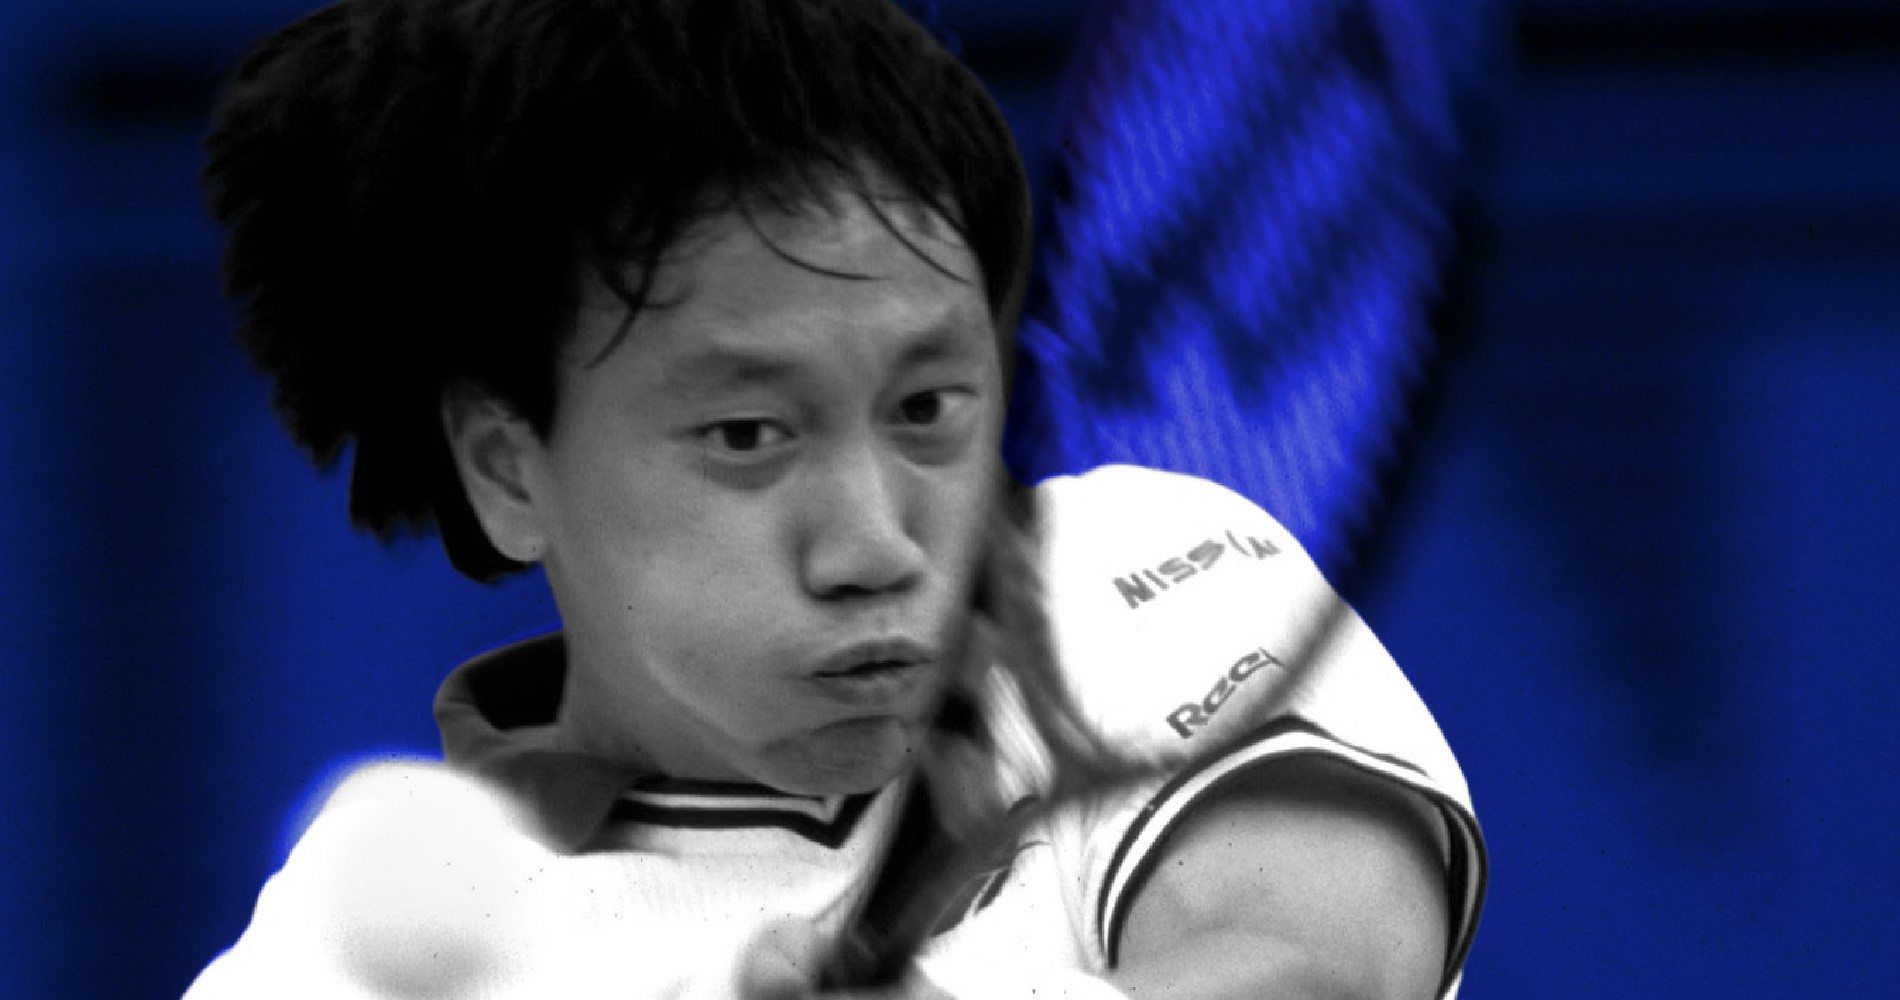 Michael Chang, On this day 03.02.2021